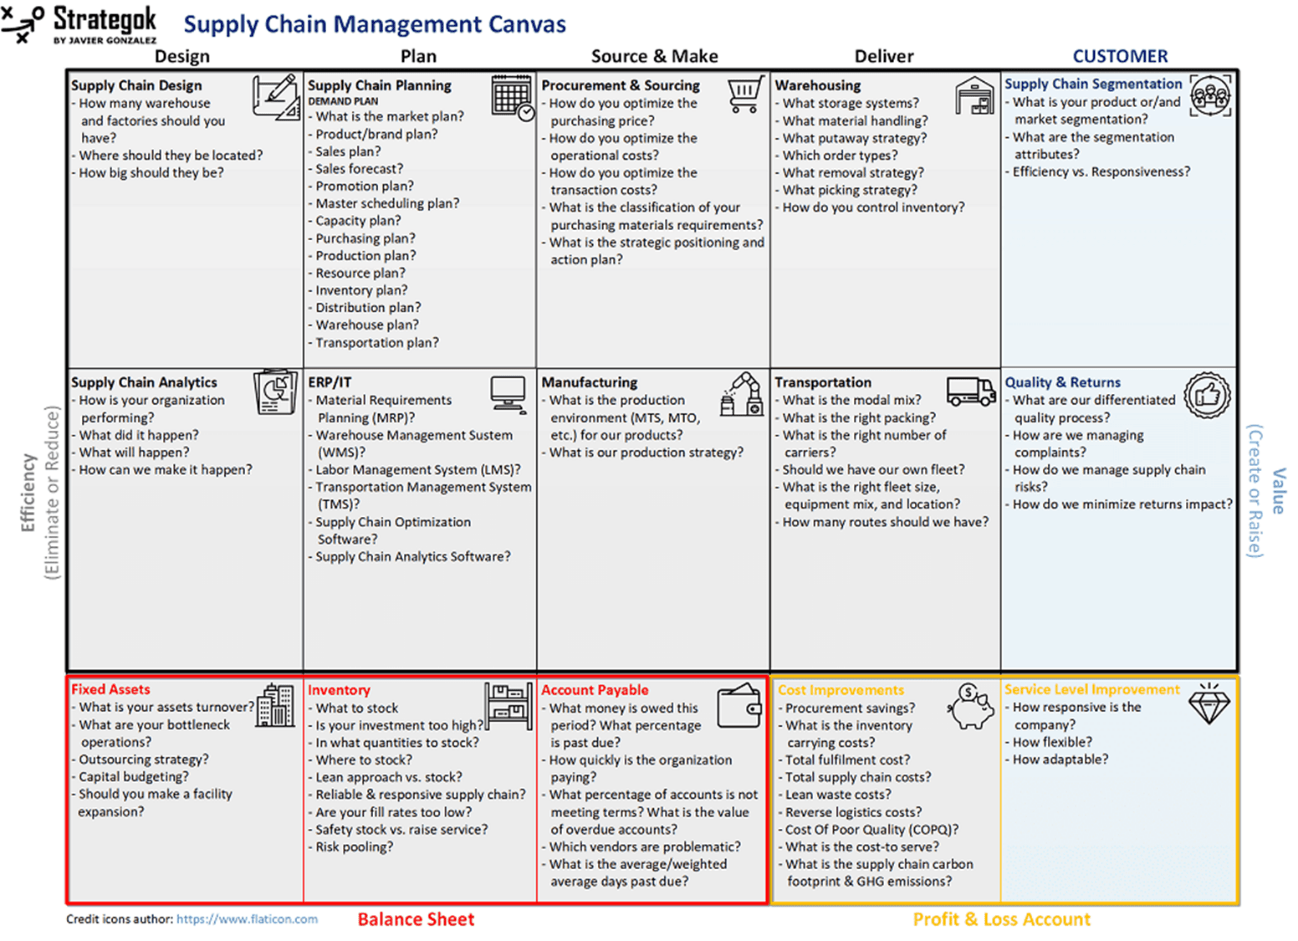 Supply Chain Canvas